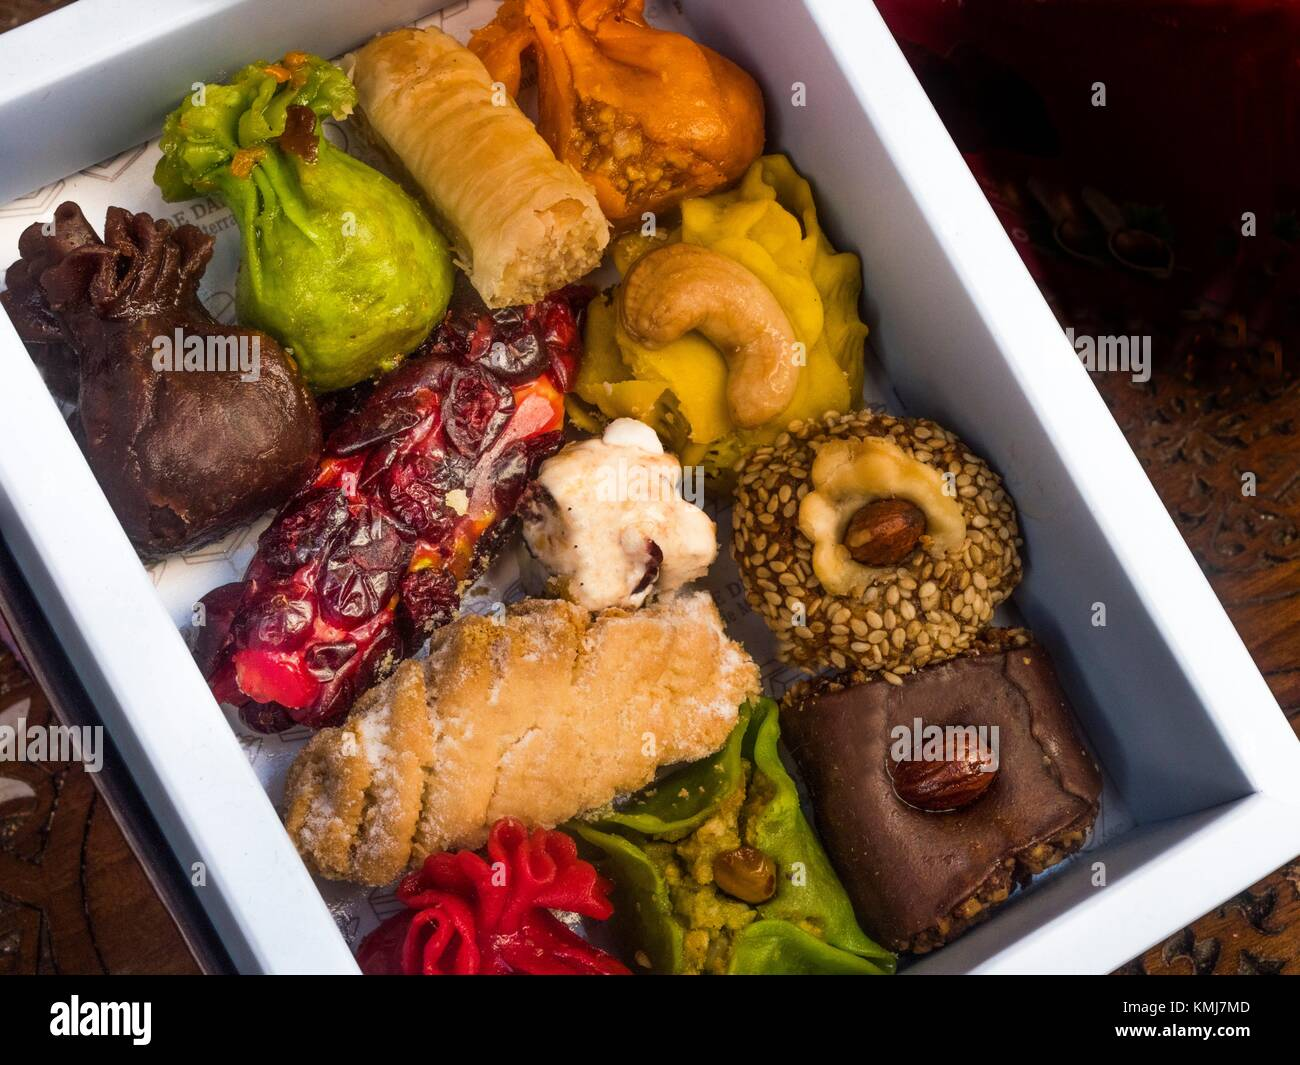 Syria-Food- Middle East sweets... Stock Photo